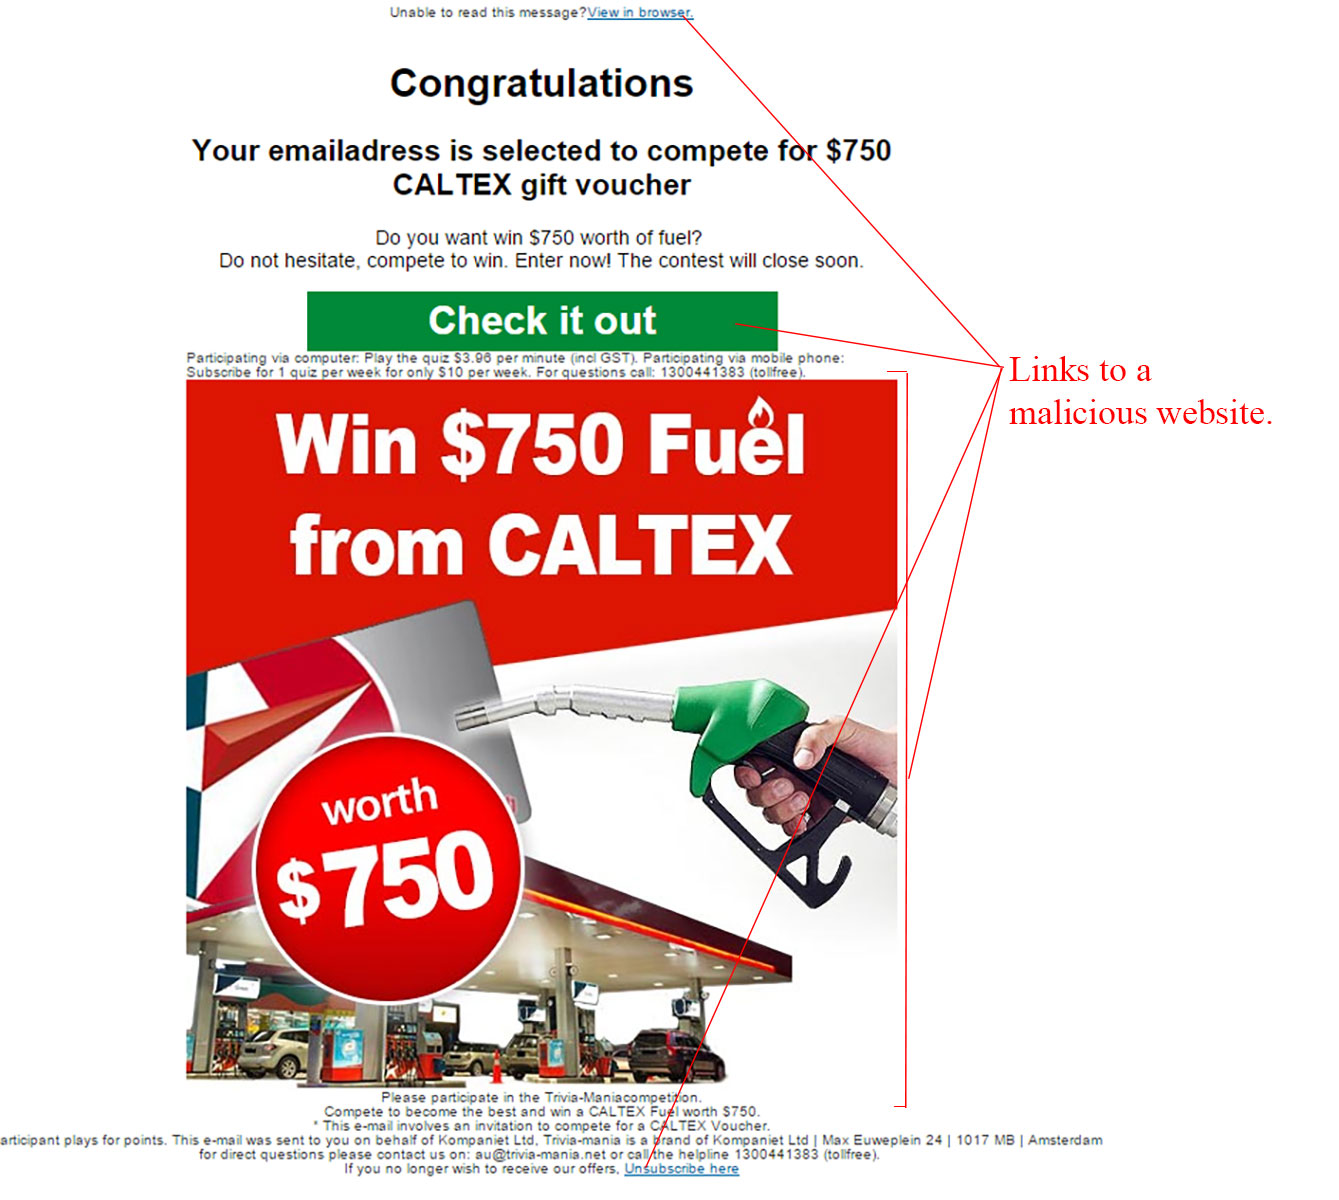 MailShark Compete For $750 Caltex Voucher Scam